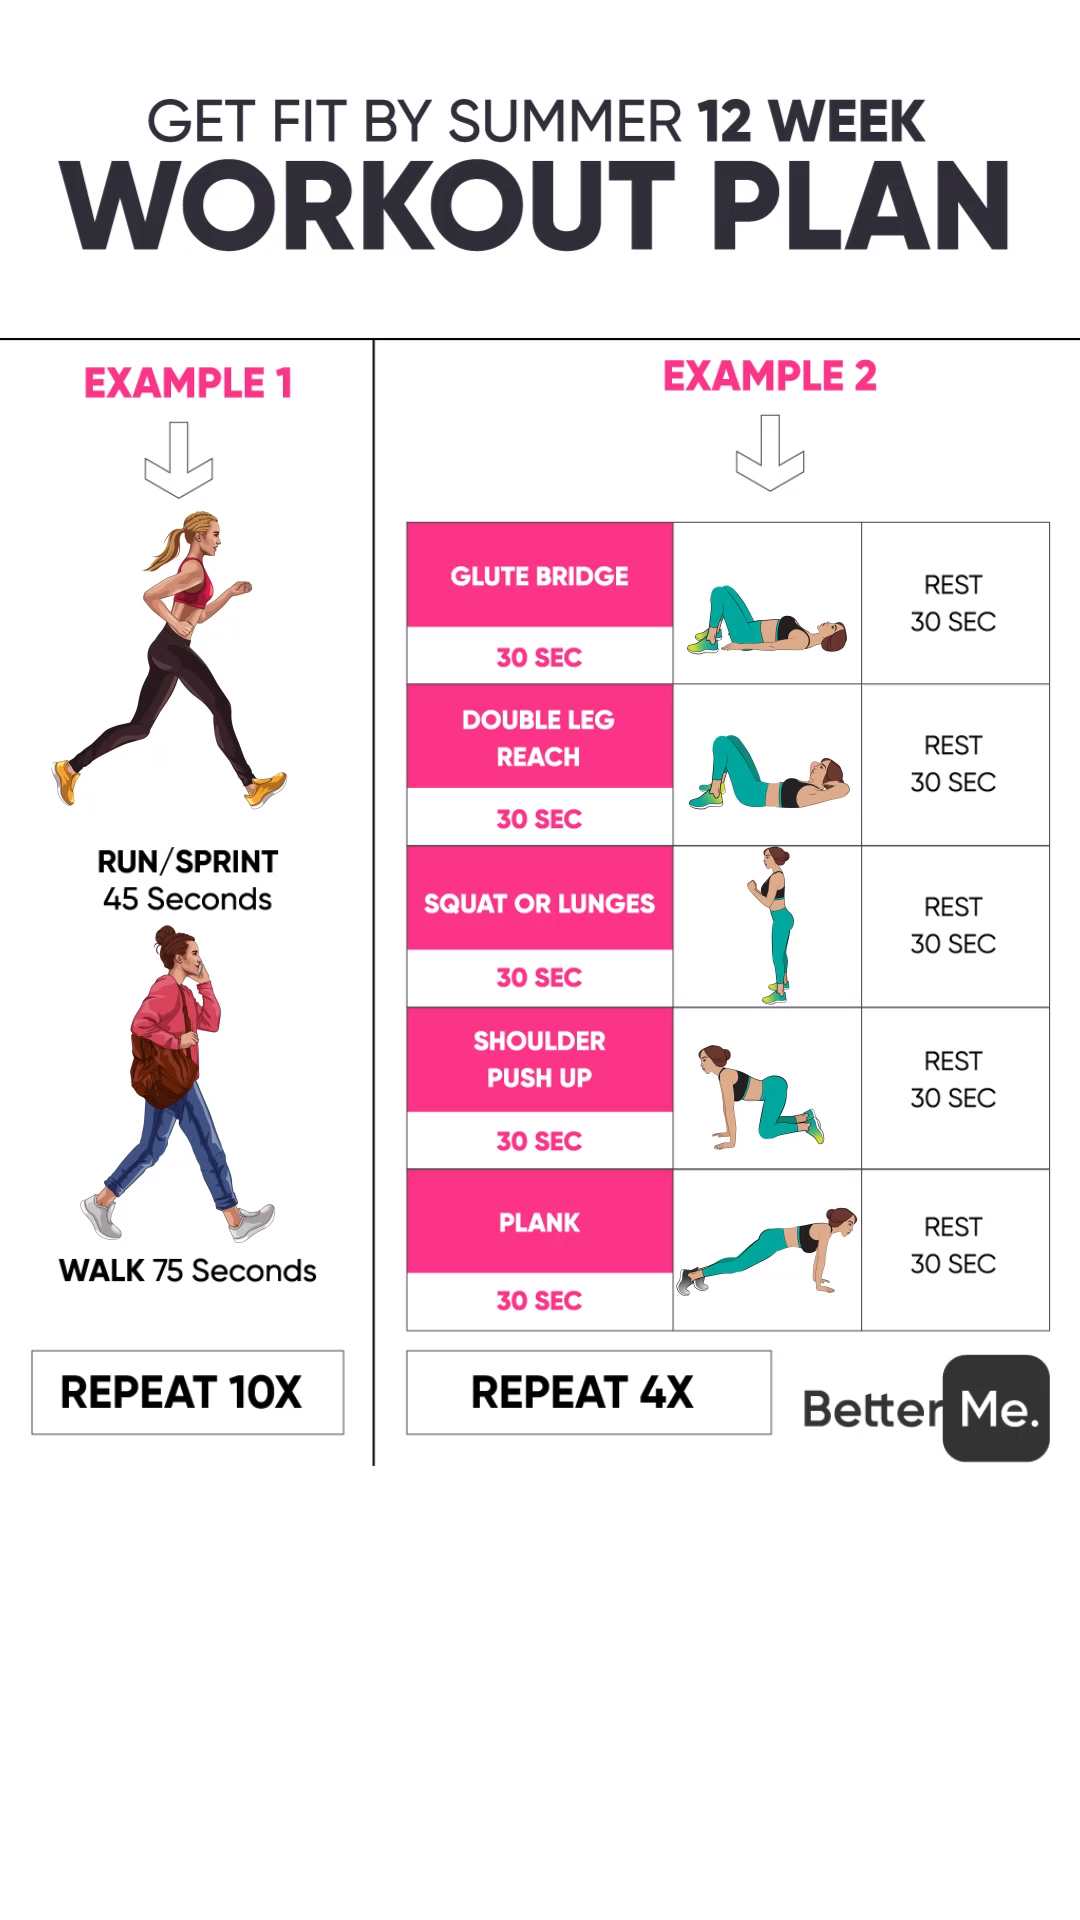 5. Get fit by summer